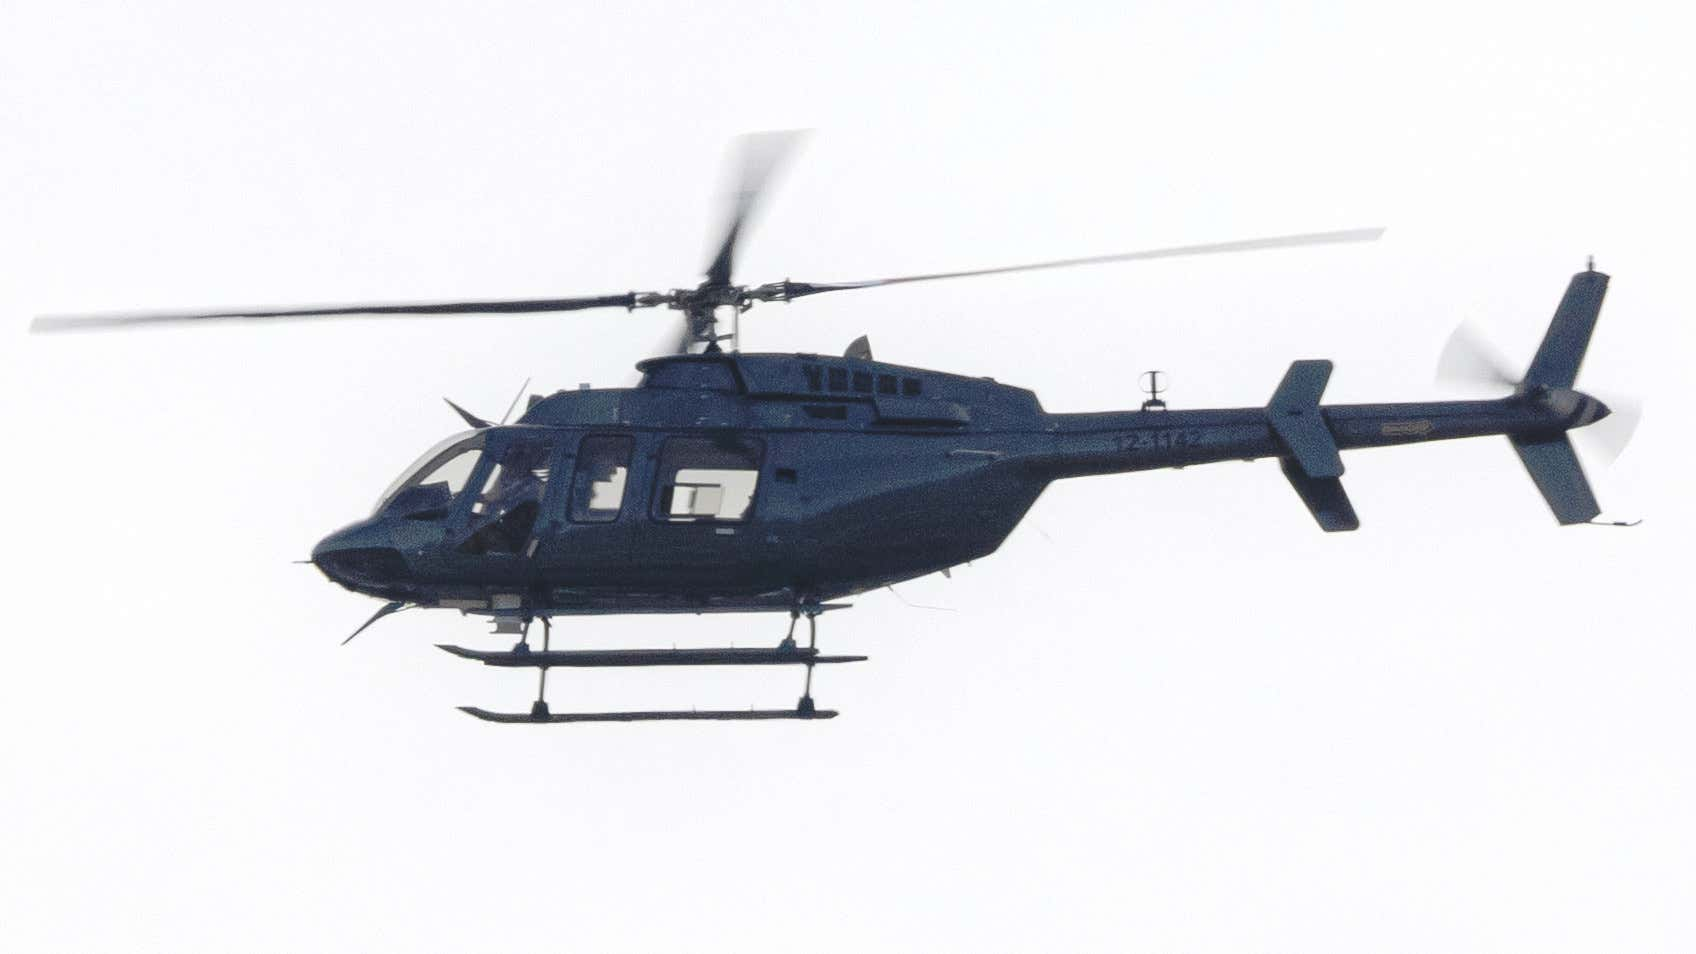 Everything We Know About The Mysterious Dark Helicopters That Have Been Circling Los Angeles